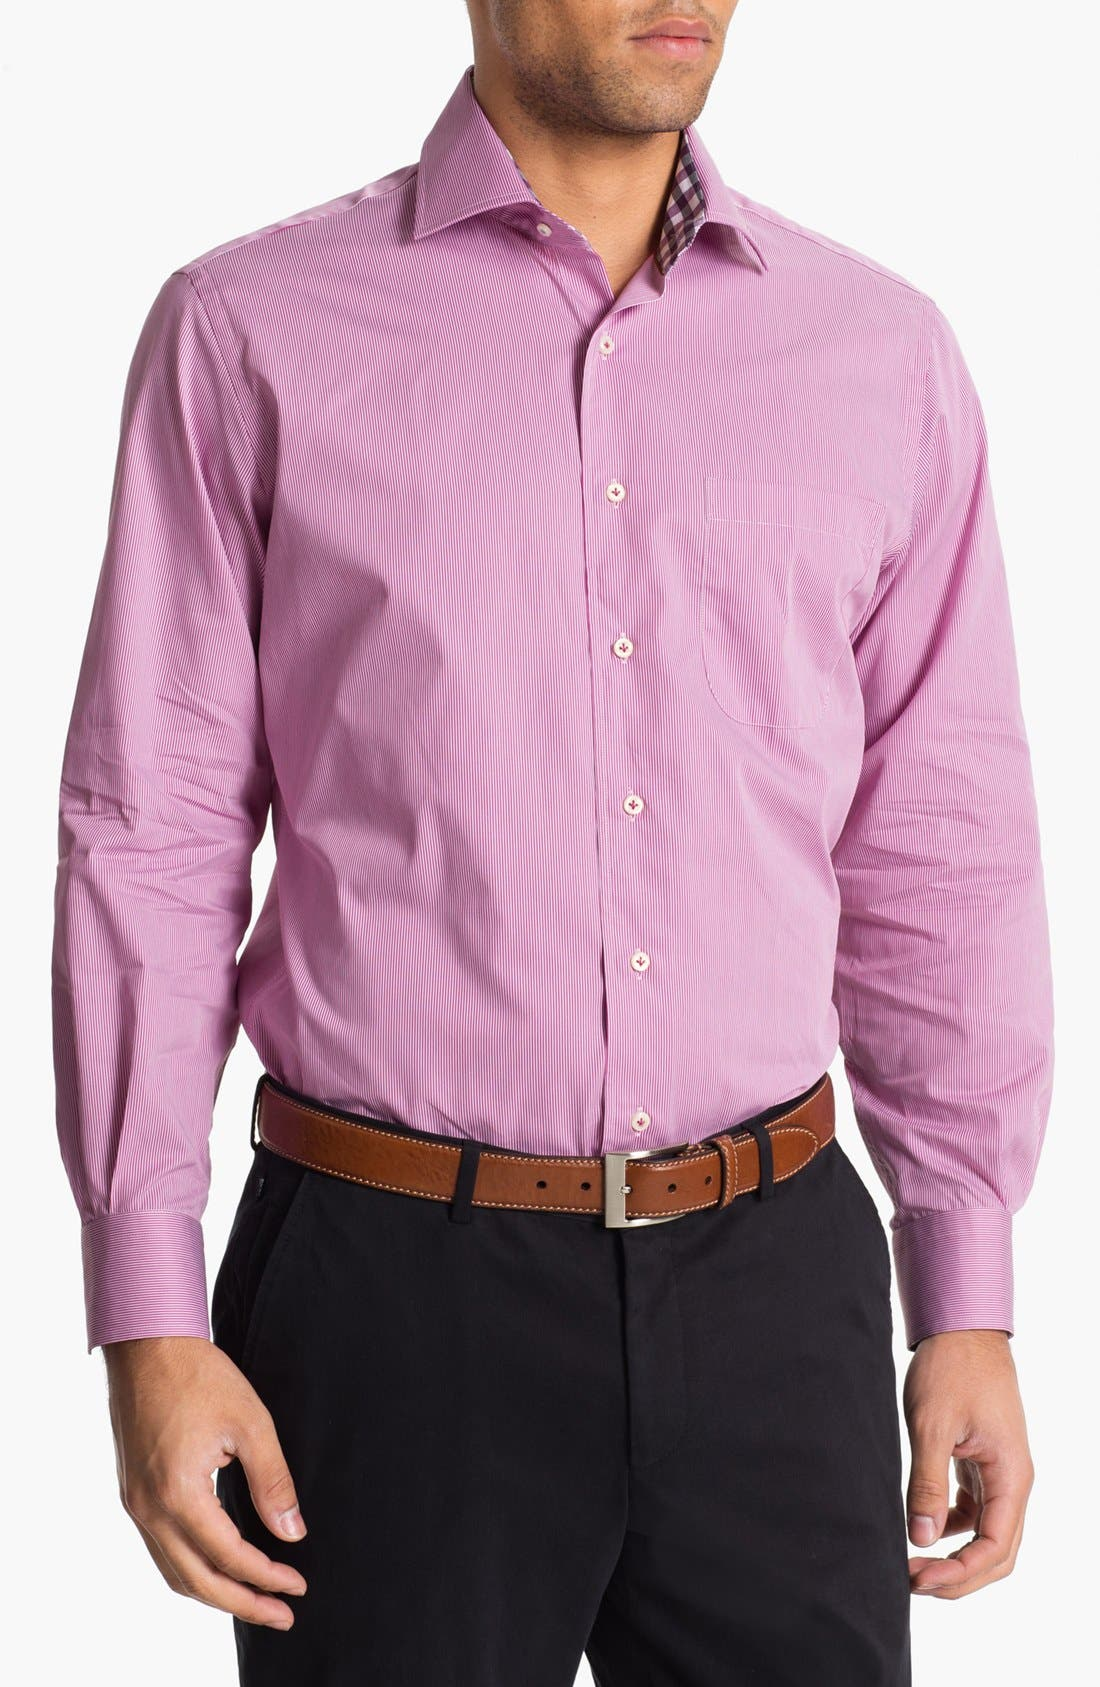 Alternate Image 1 Selected - Peter Millar Regular Fit Sport Shirt (Tall)